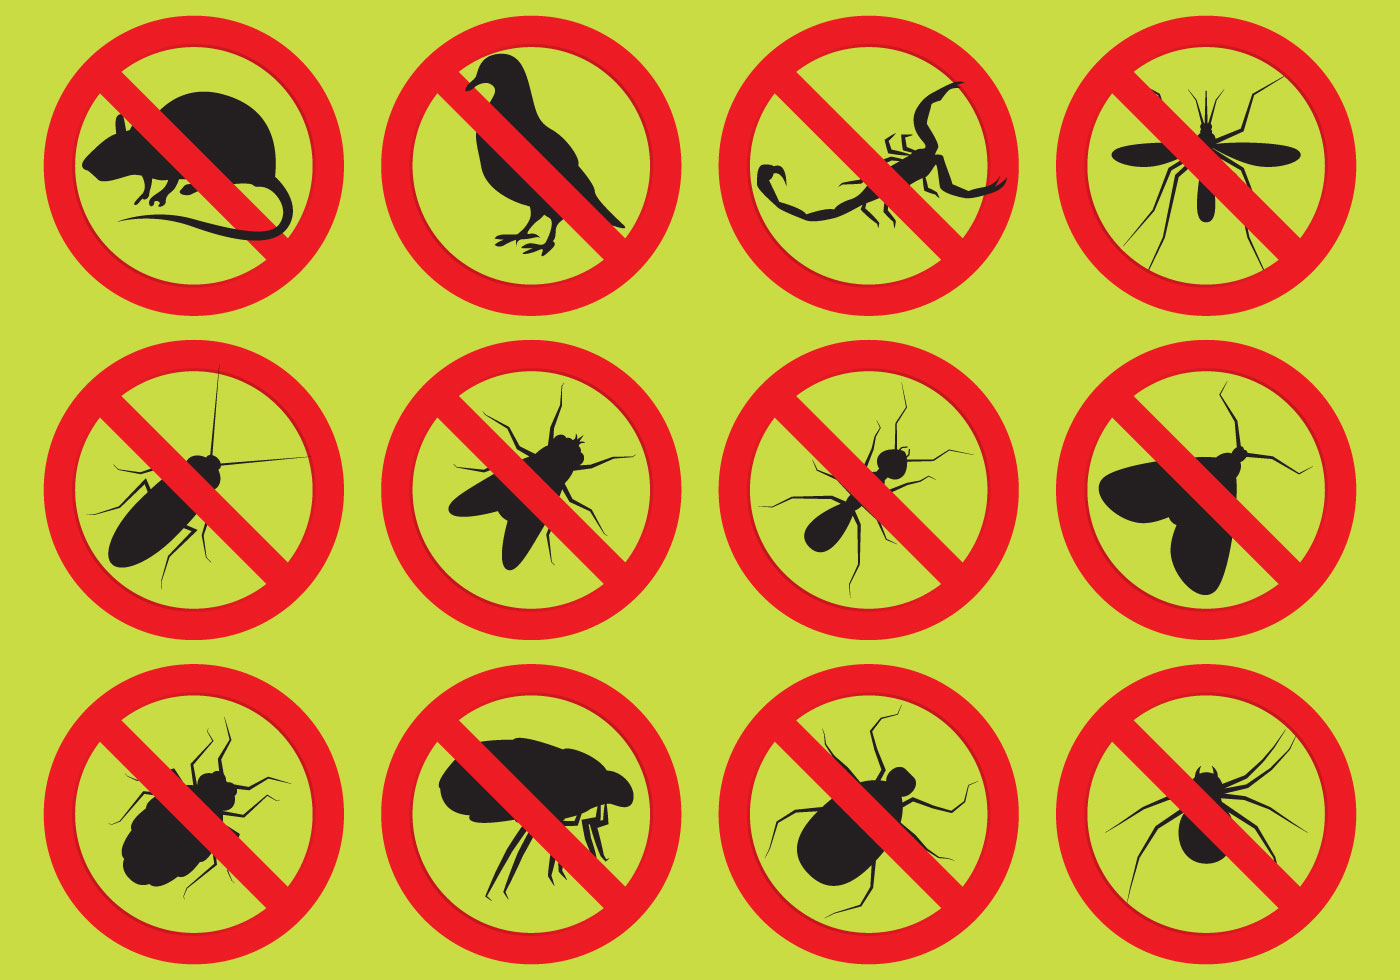 pest-control-vector-icons.jpg